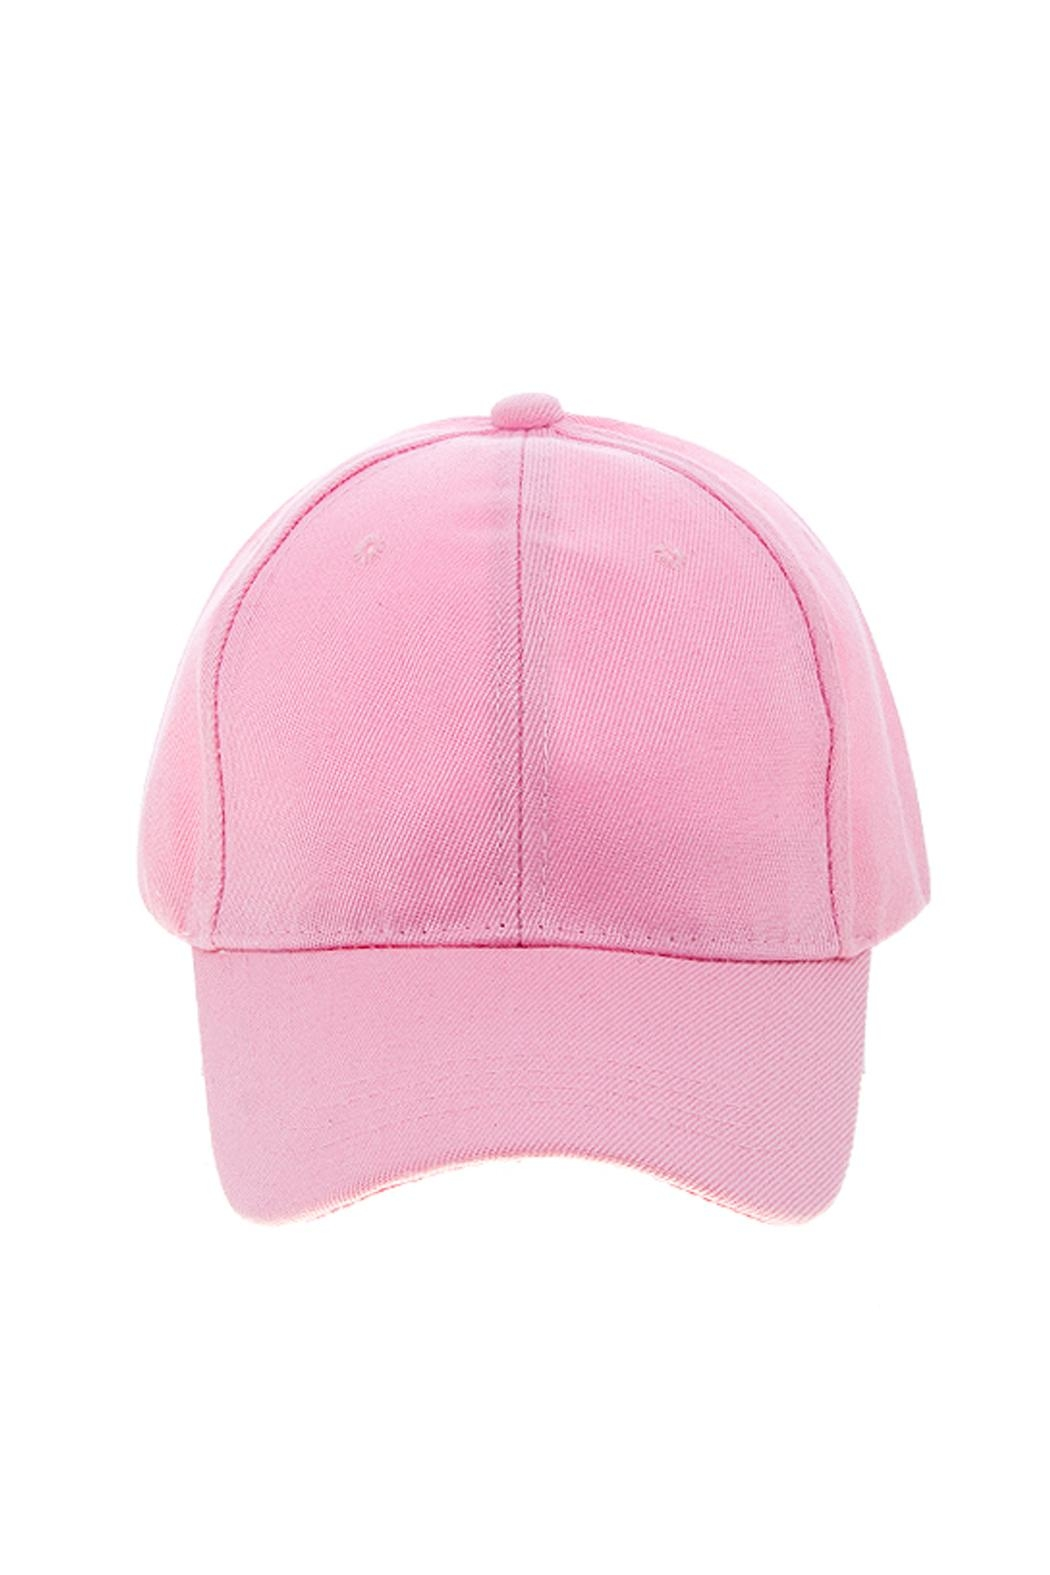 Wild Lilies Jewelry  Pink Baseball Cap - Side Cropped Image